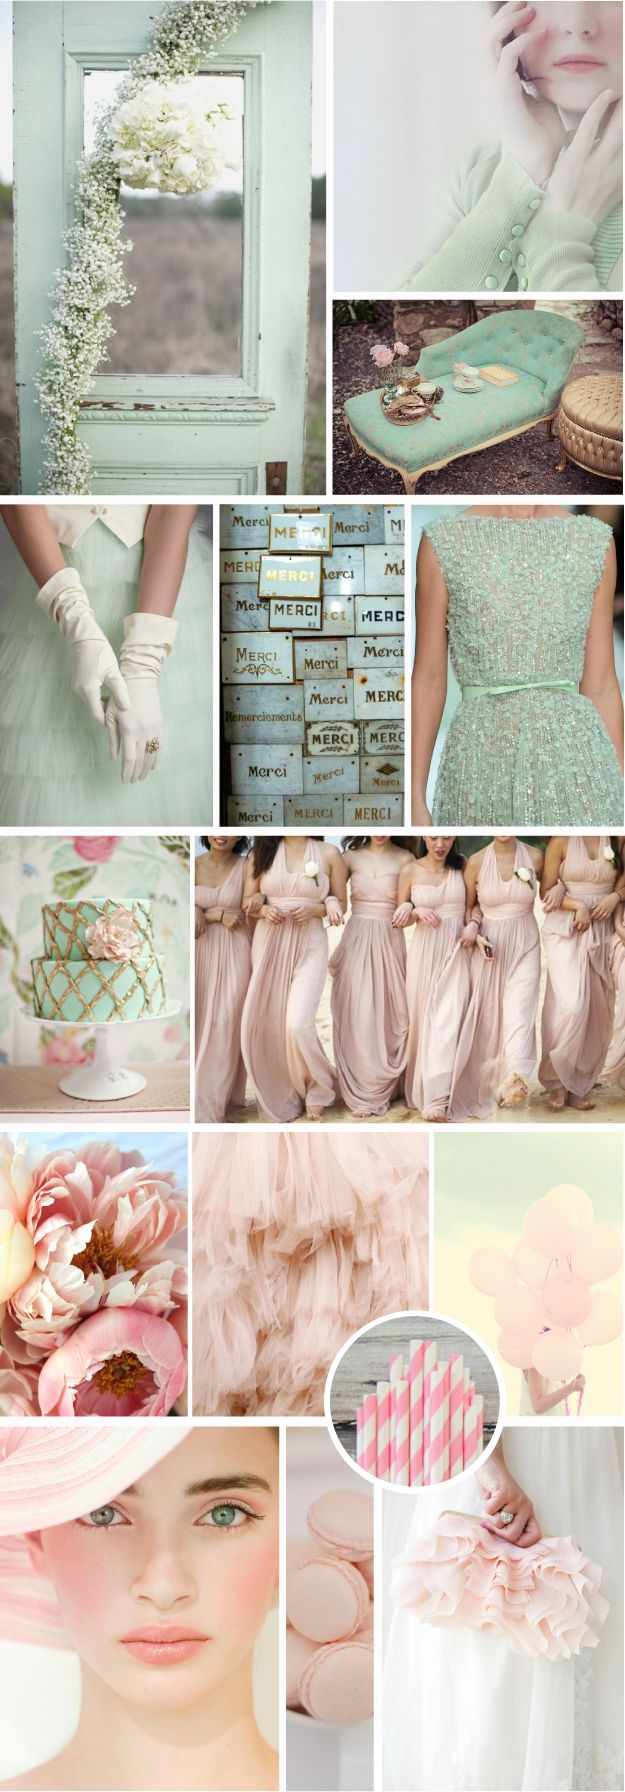 Blush and mint wedding @Matt Nickles Valk Chuah